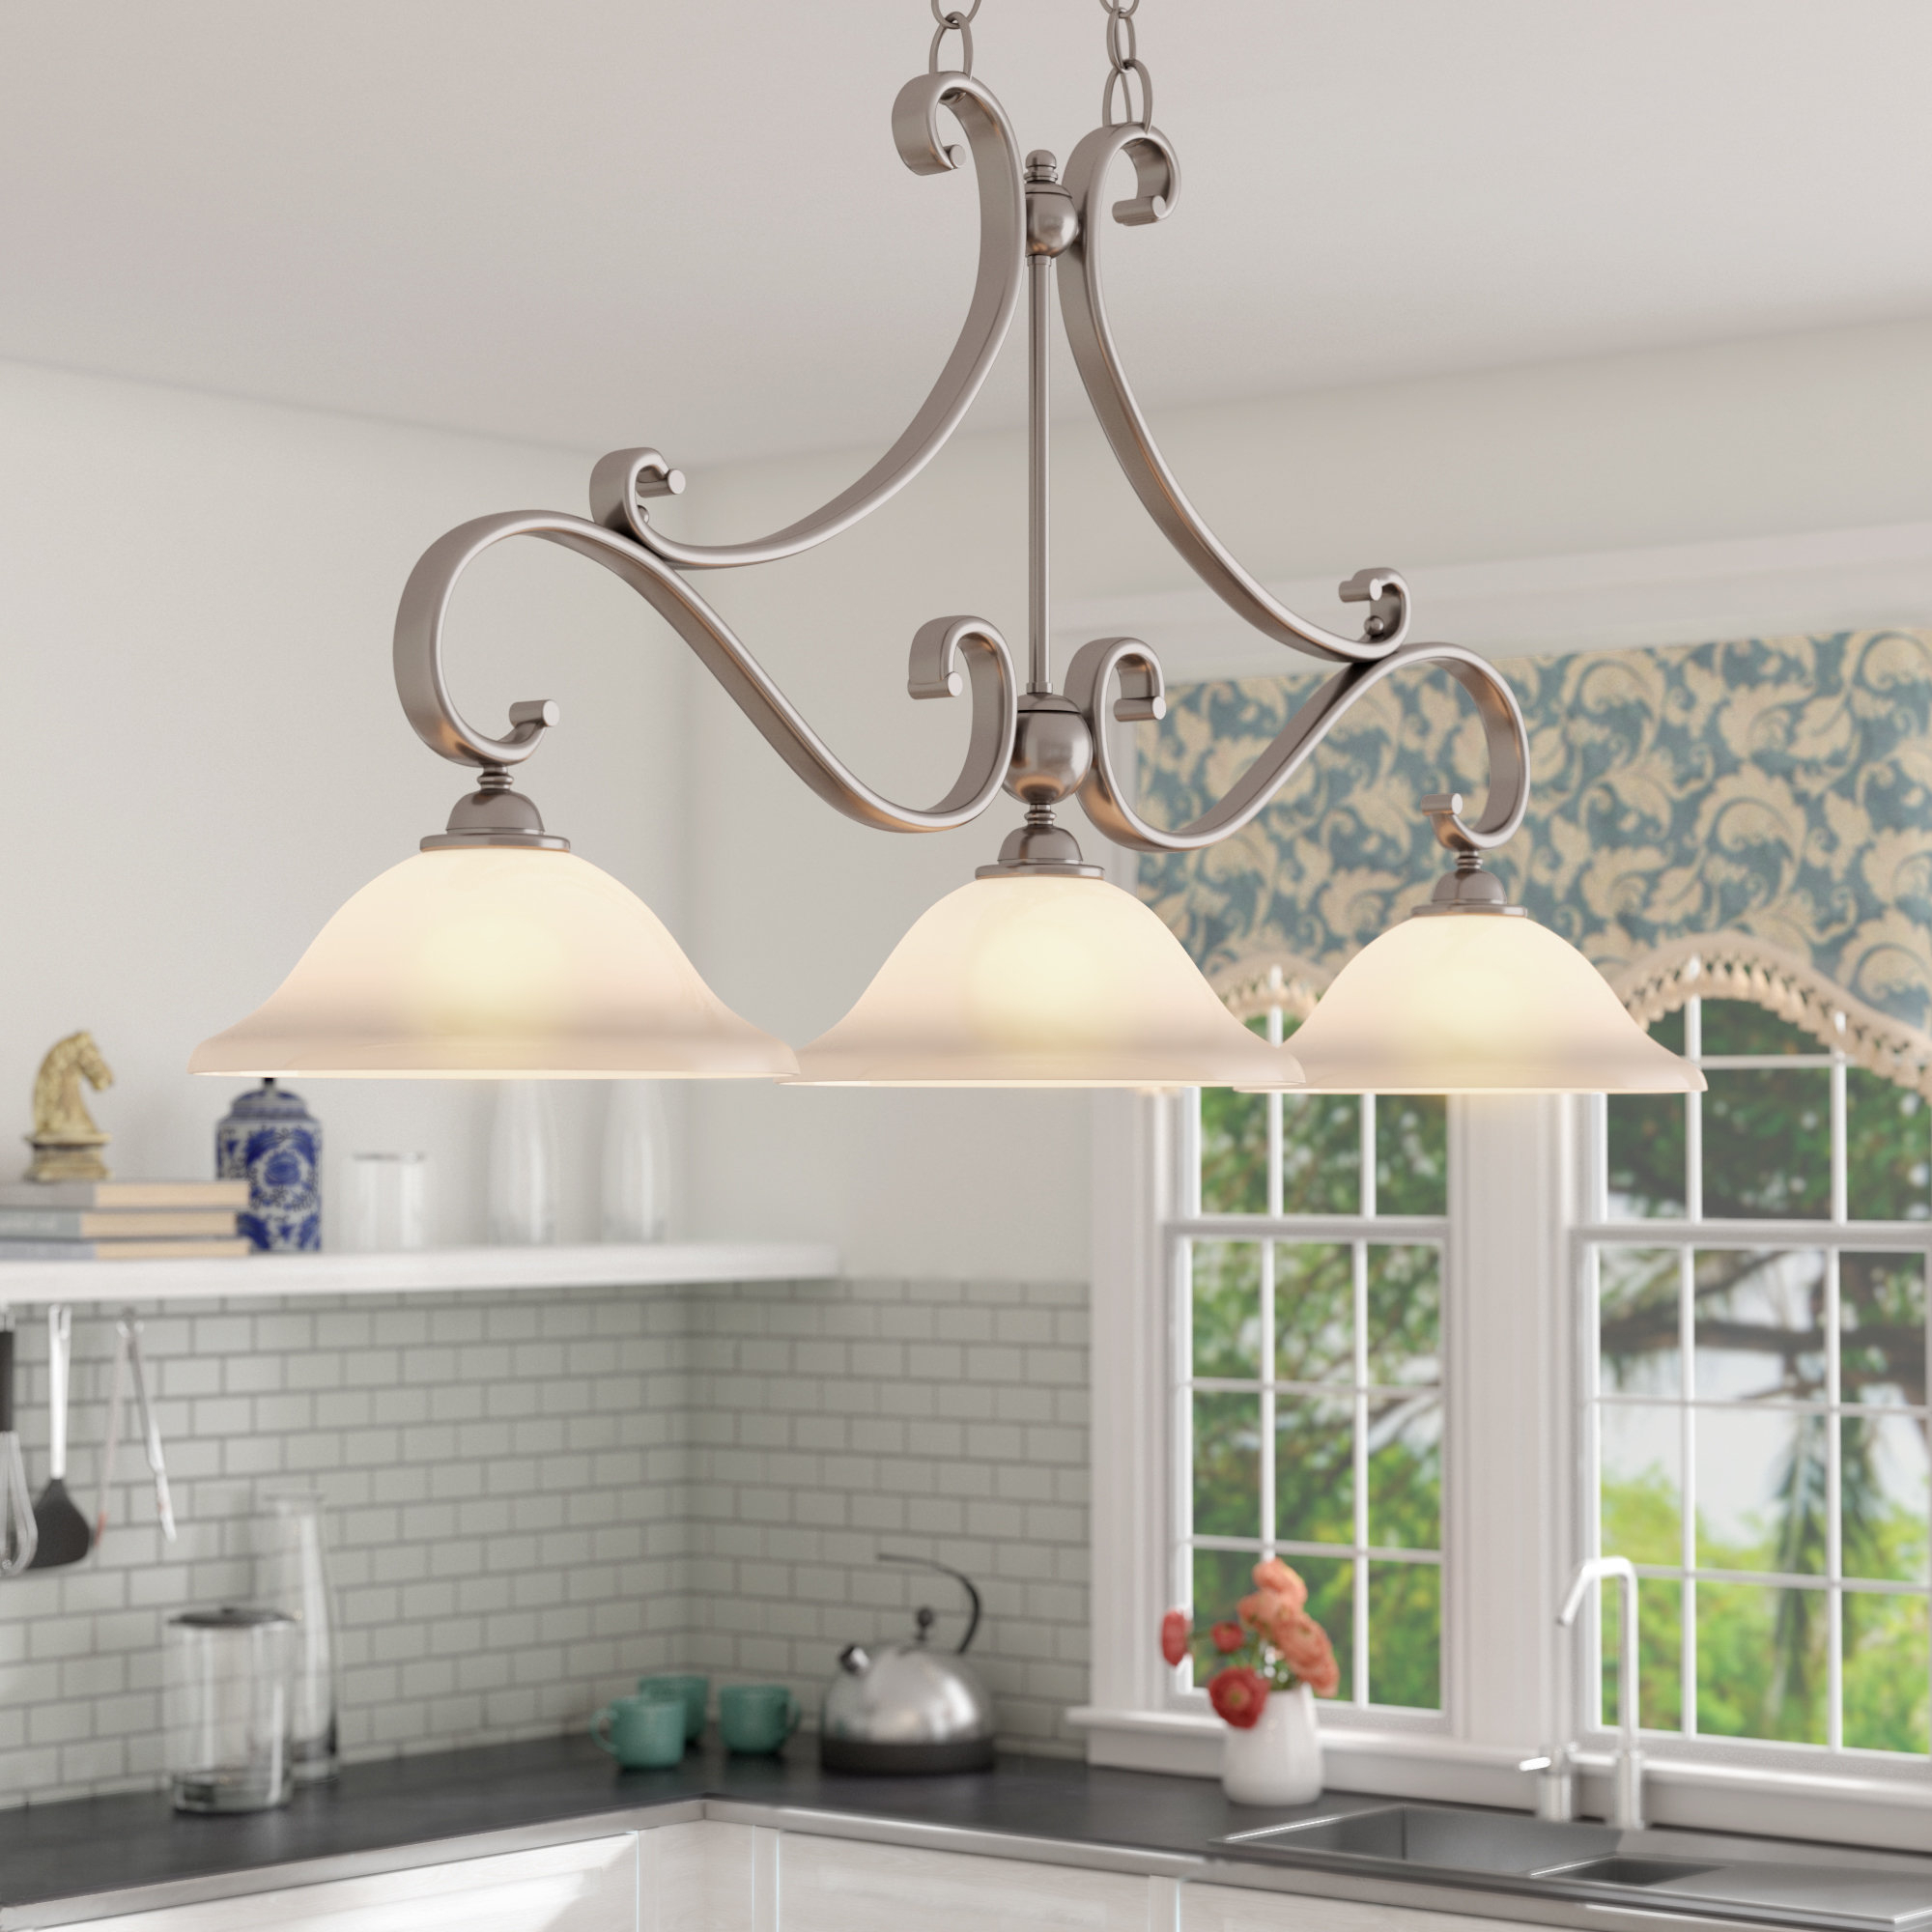 Fashionable Van Horne 3 Light Kitchen Island Linear Pendant With Regard To Van Horne 3 Light Single Teardrop Pendants (View 4 of 25)